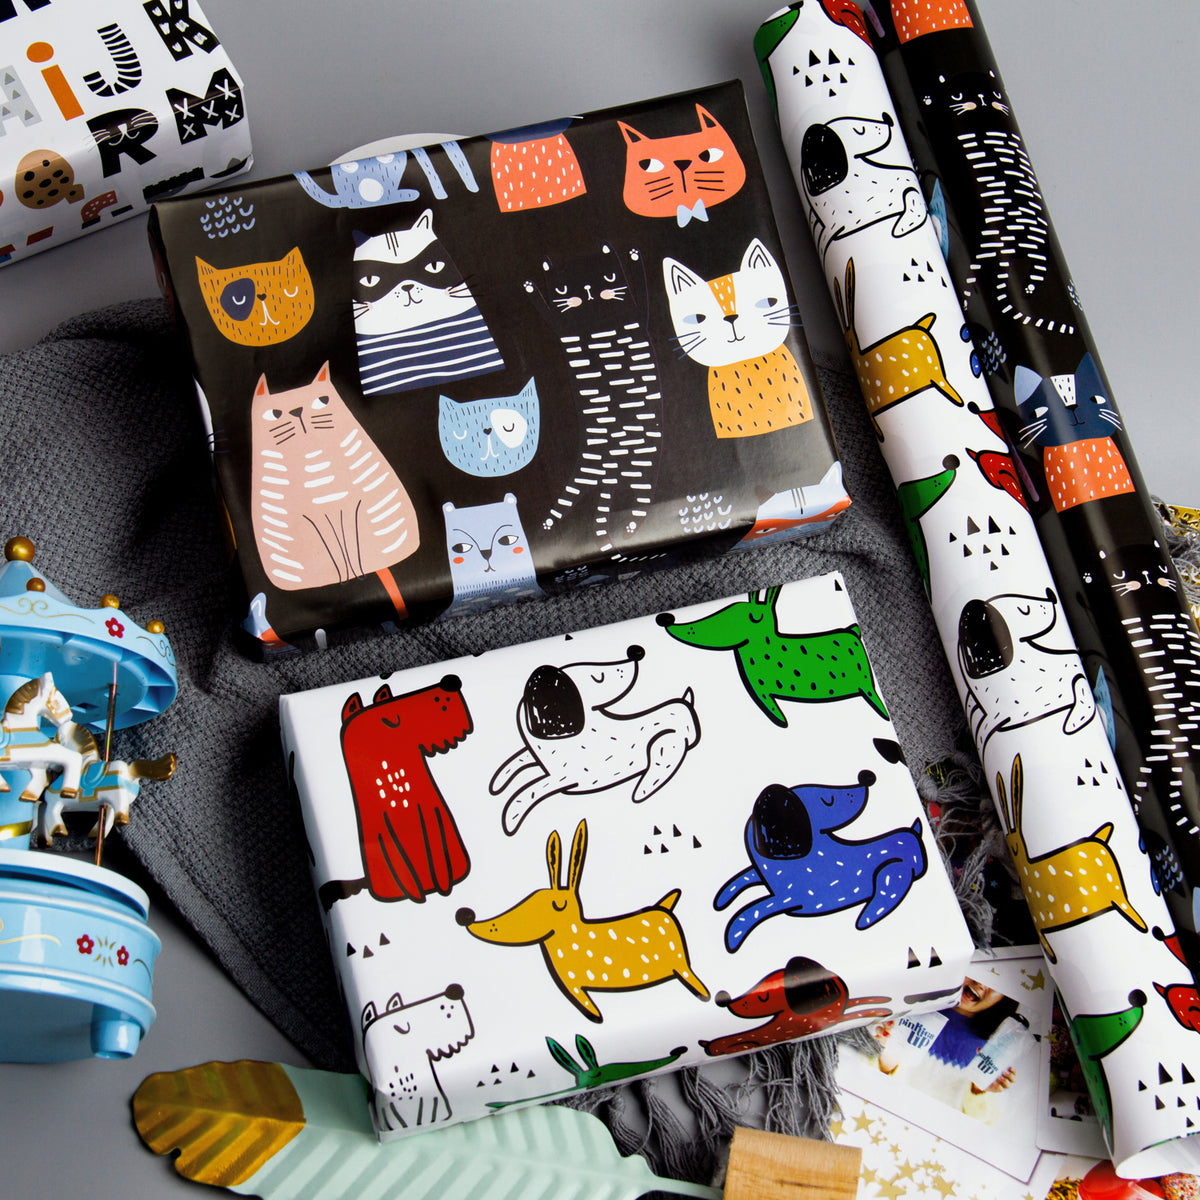 Wrapaholic-Cute Animal-Design -Gift-Wrapping-Paper-Roll-4 Rolls-4